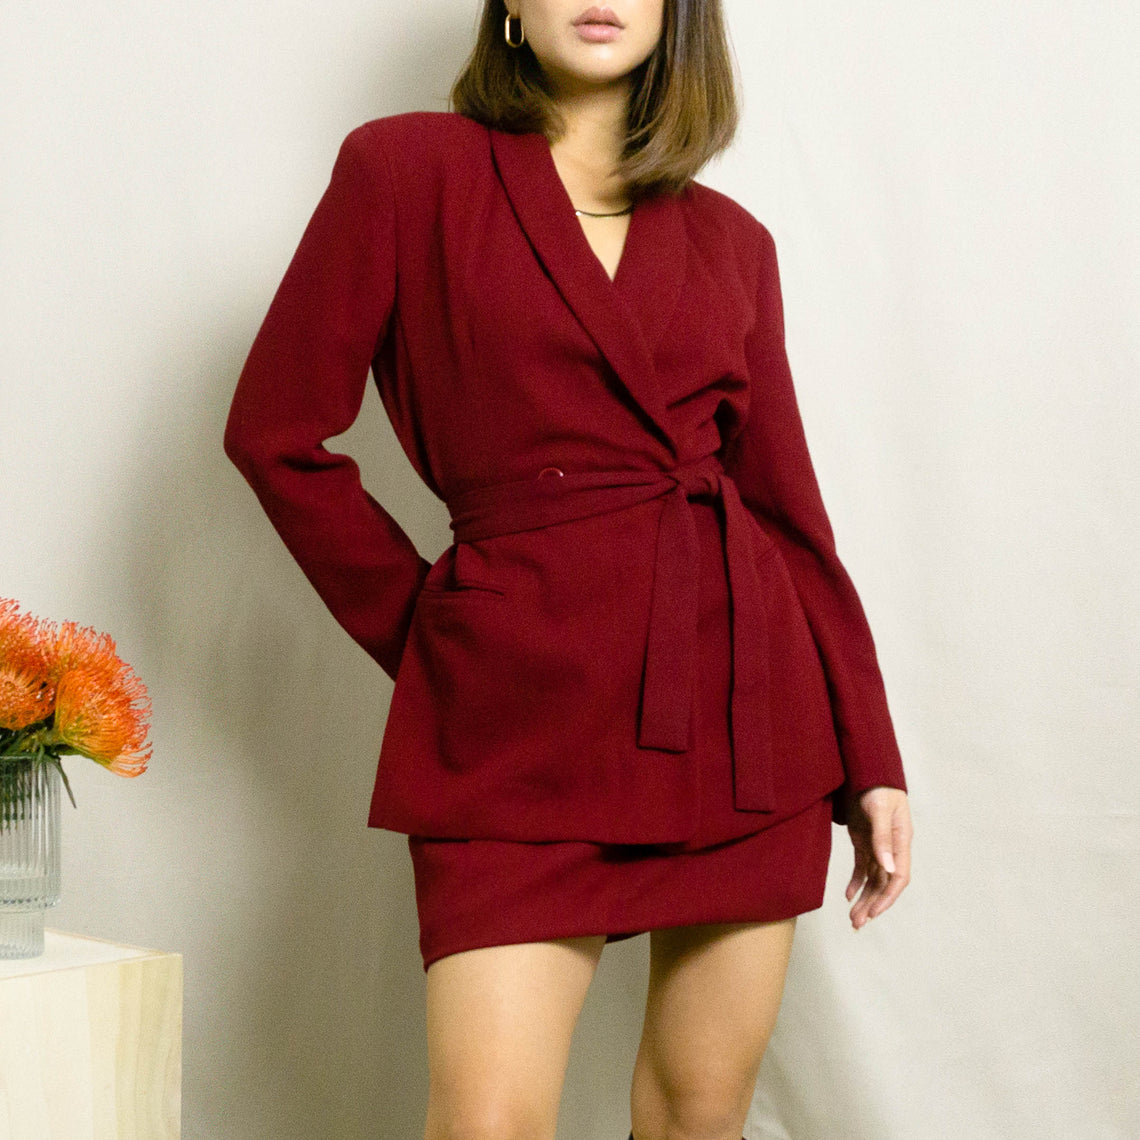 1990's SKIRT SUIT WITH WRAP BLAZER | RED | S/M